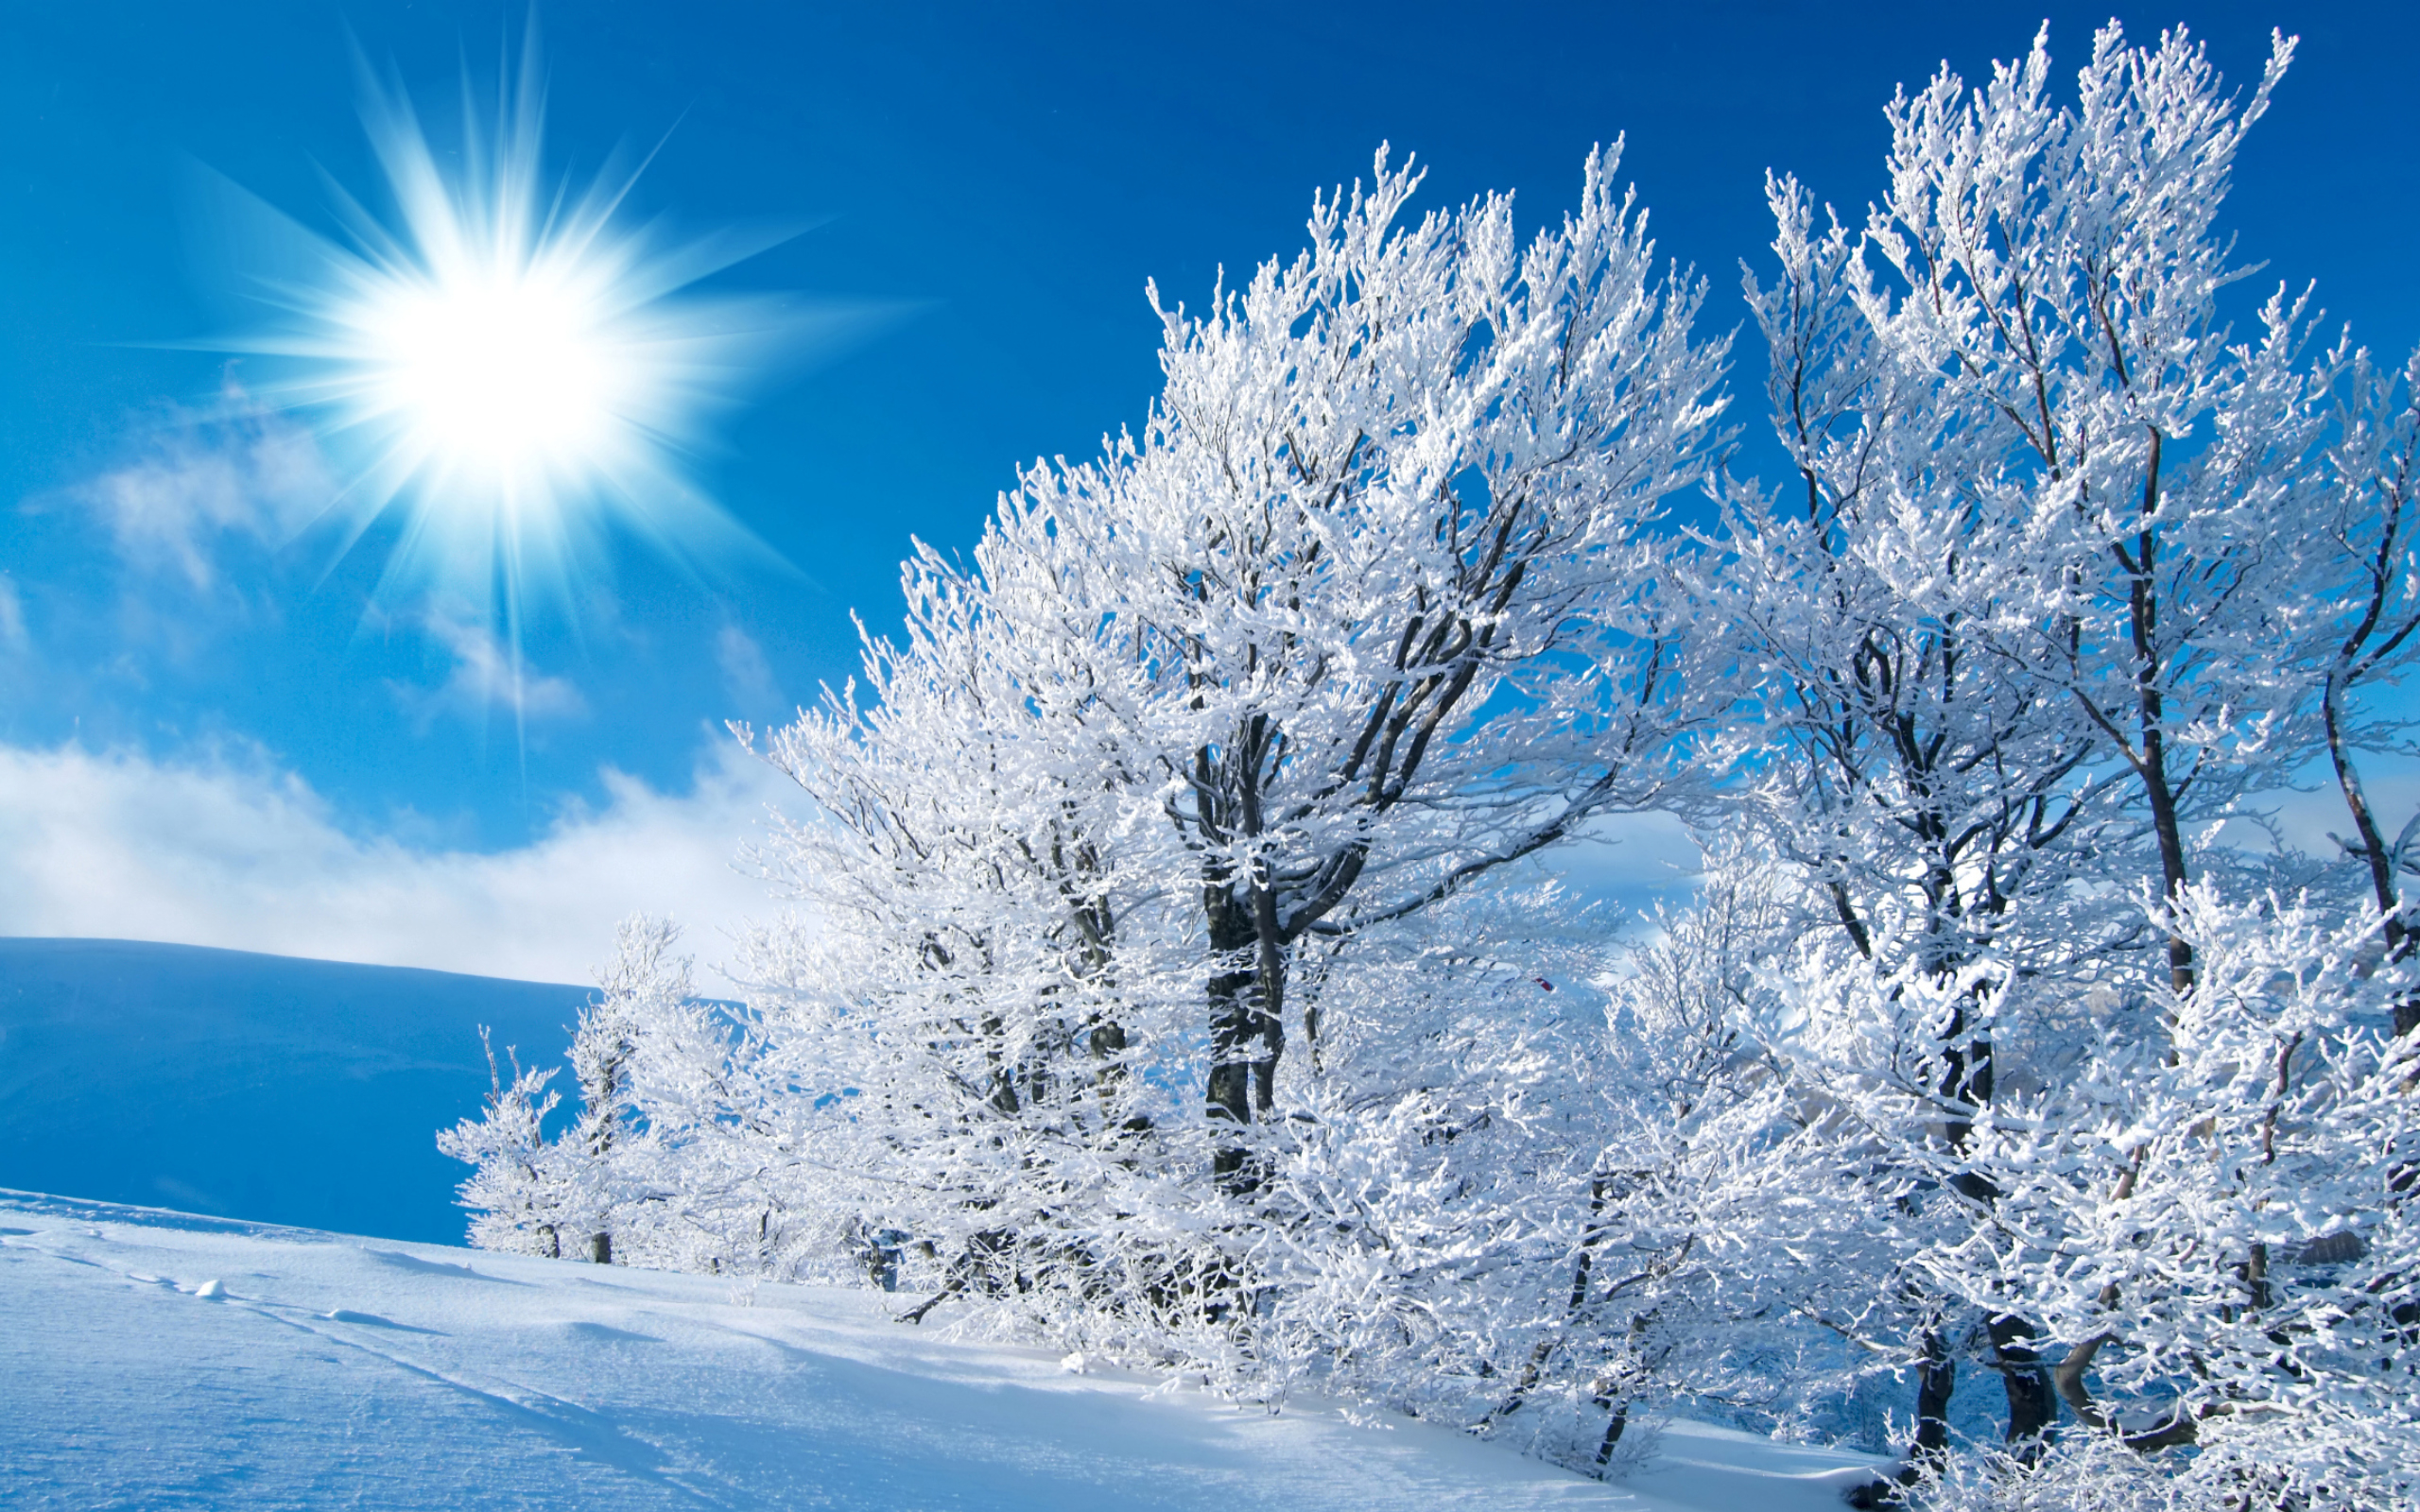 Wallpaper Winter Sun 2560x1600